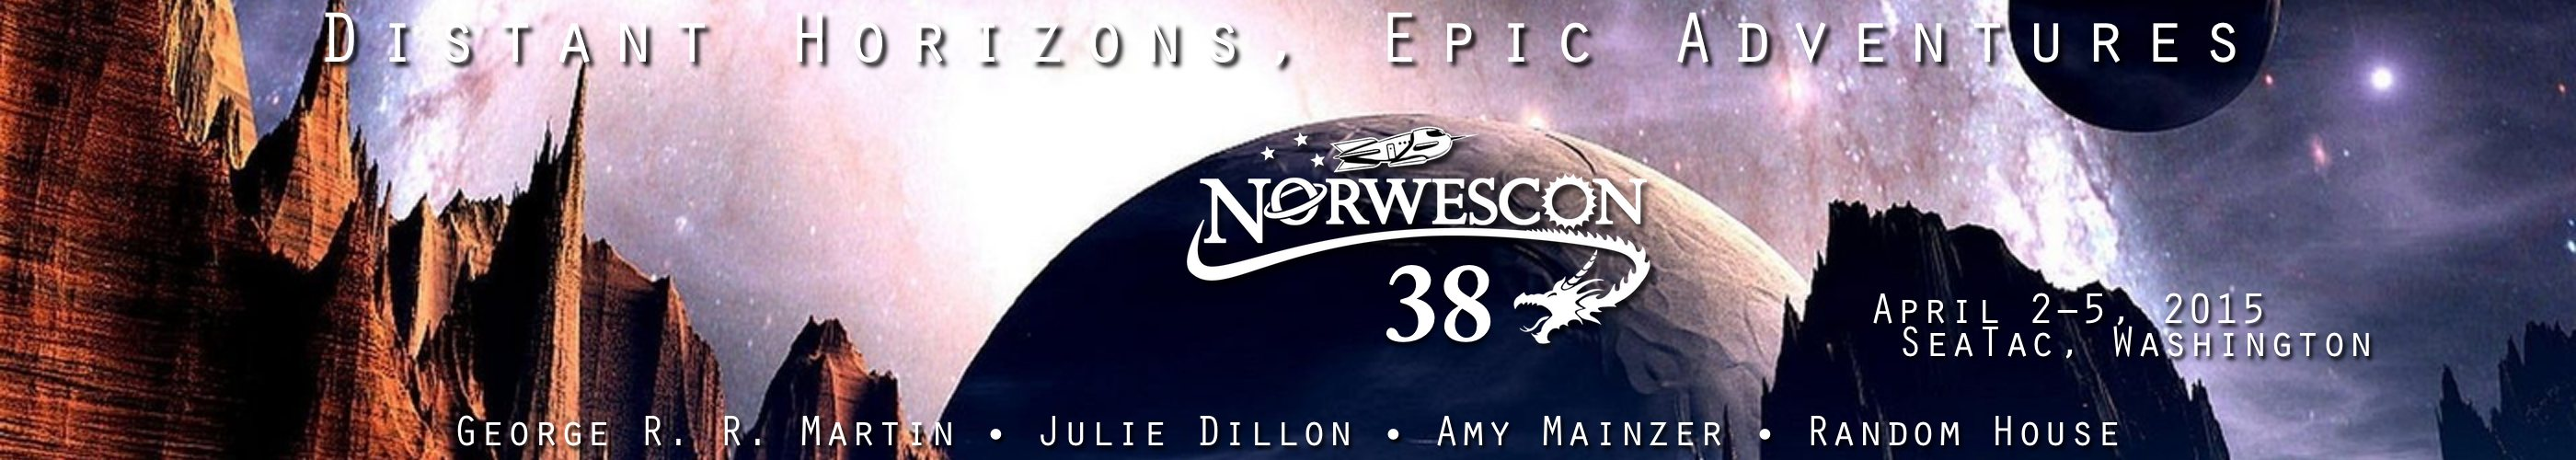 Norwescon 38: Distant Horizons, Epic Adventures